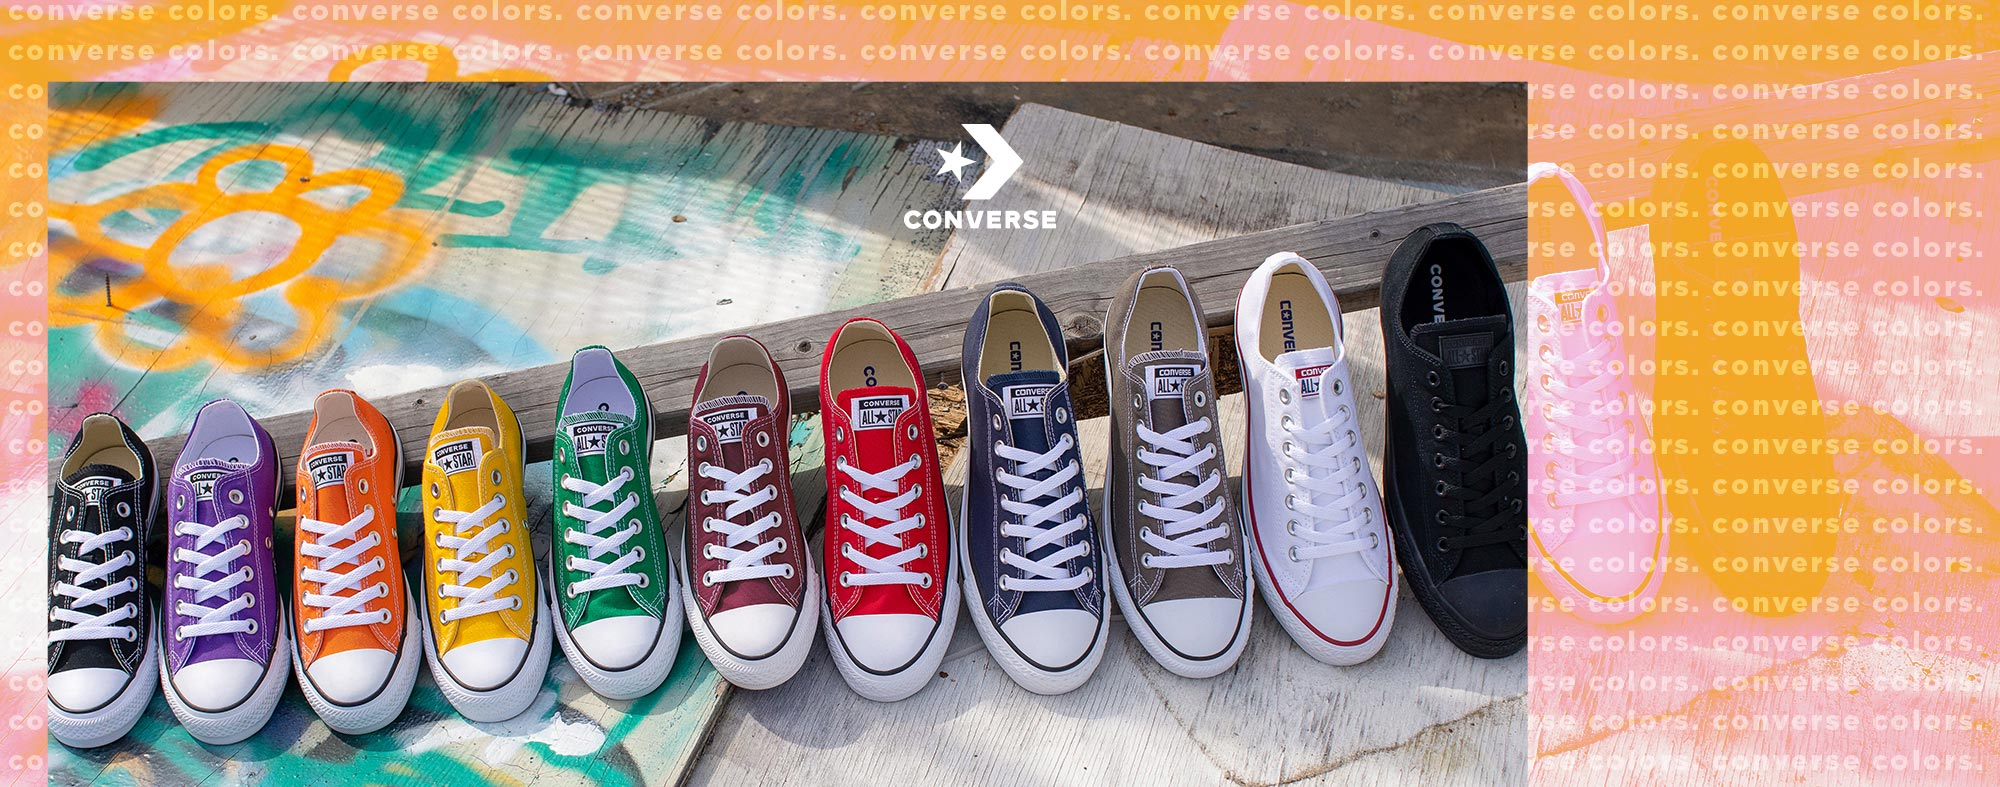 Journeys Mens Shoes, Womens Shoes and Clothing